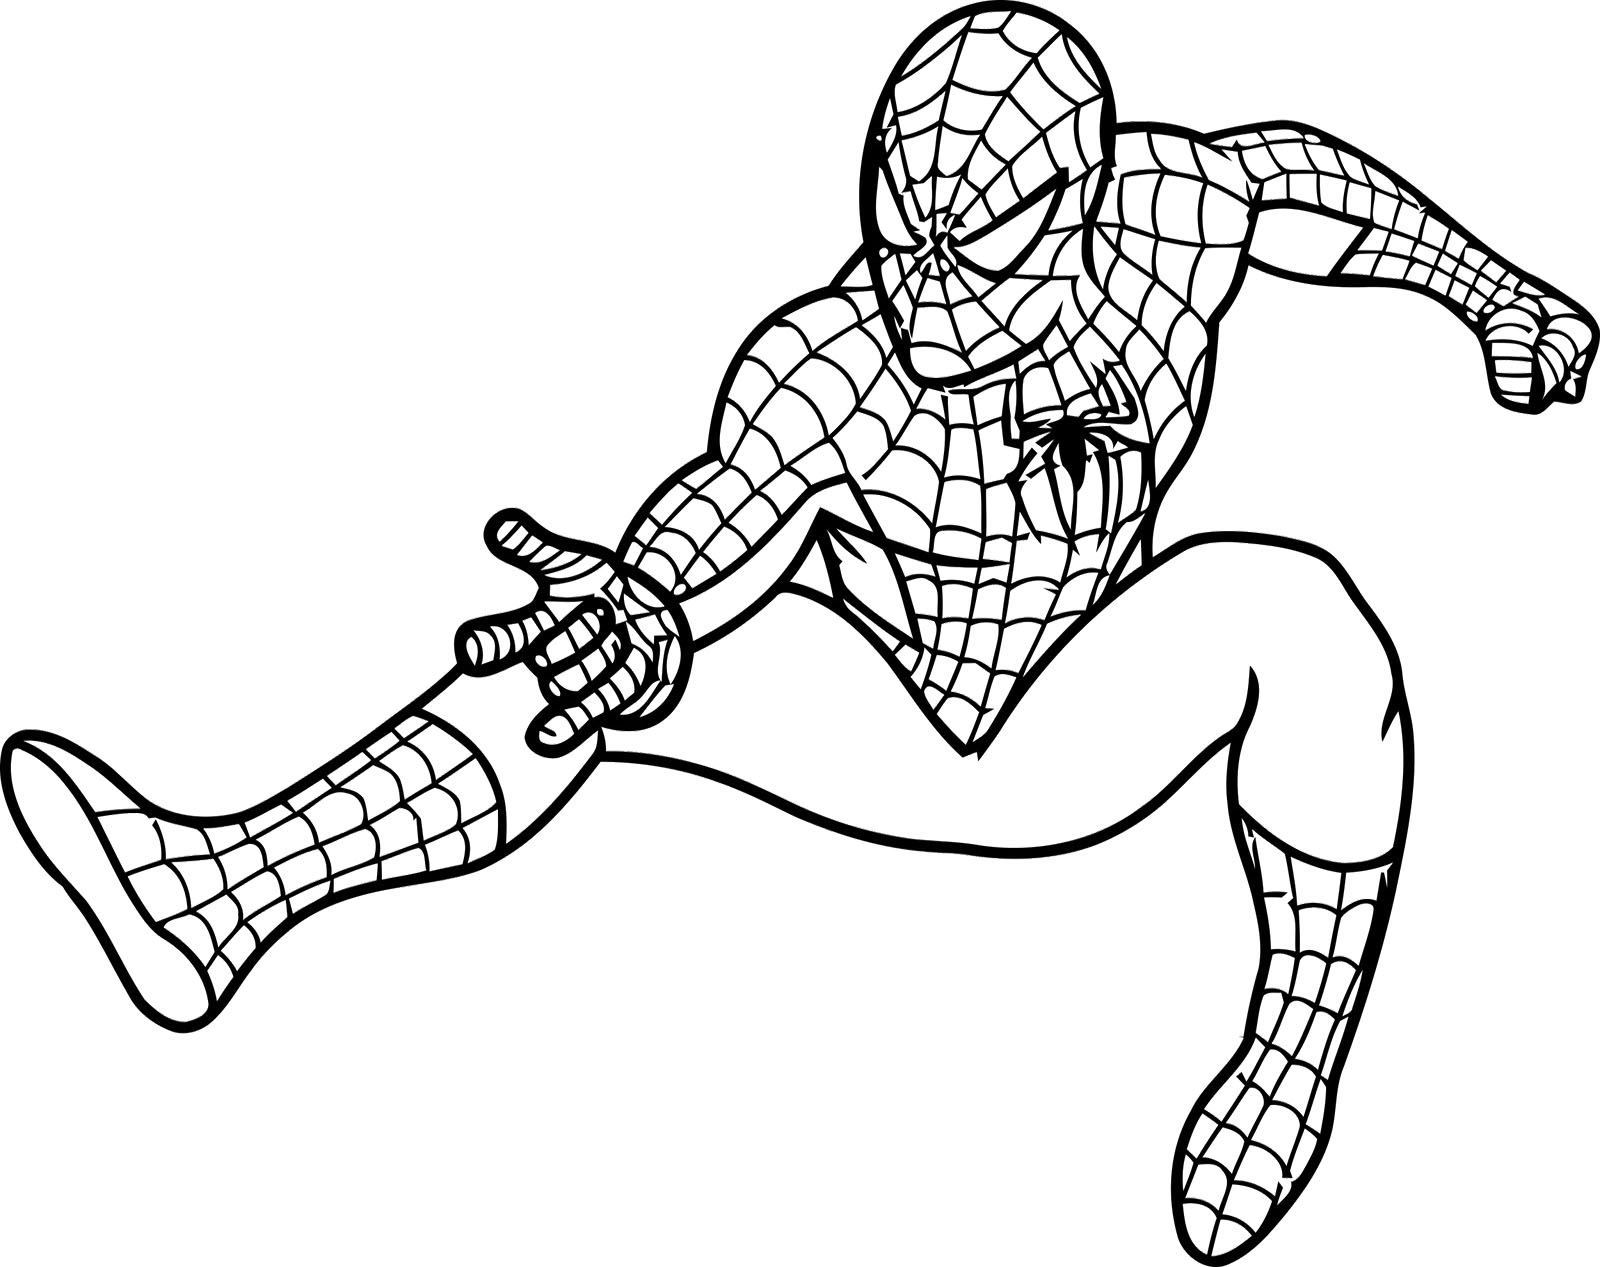 1600x1267 Greatest Coloring Pages Of Spiderman Dr Odd Spider Man Images